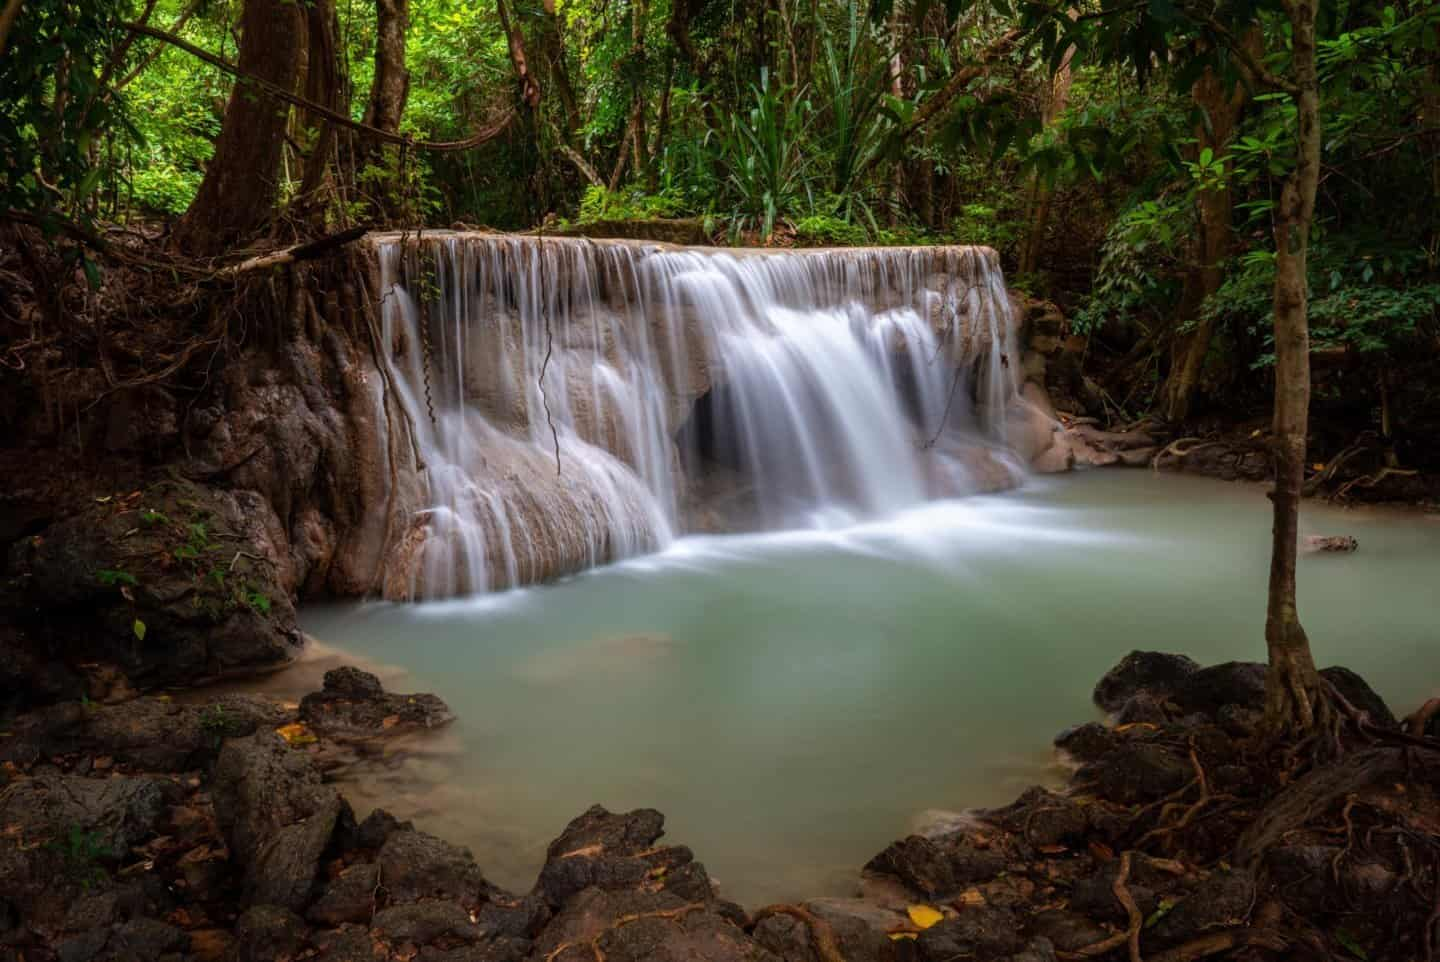 A long exposure of one of the lower levels of Huay Mae Khamin Falls